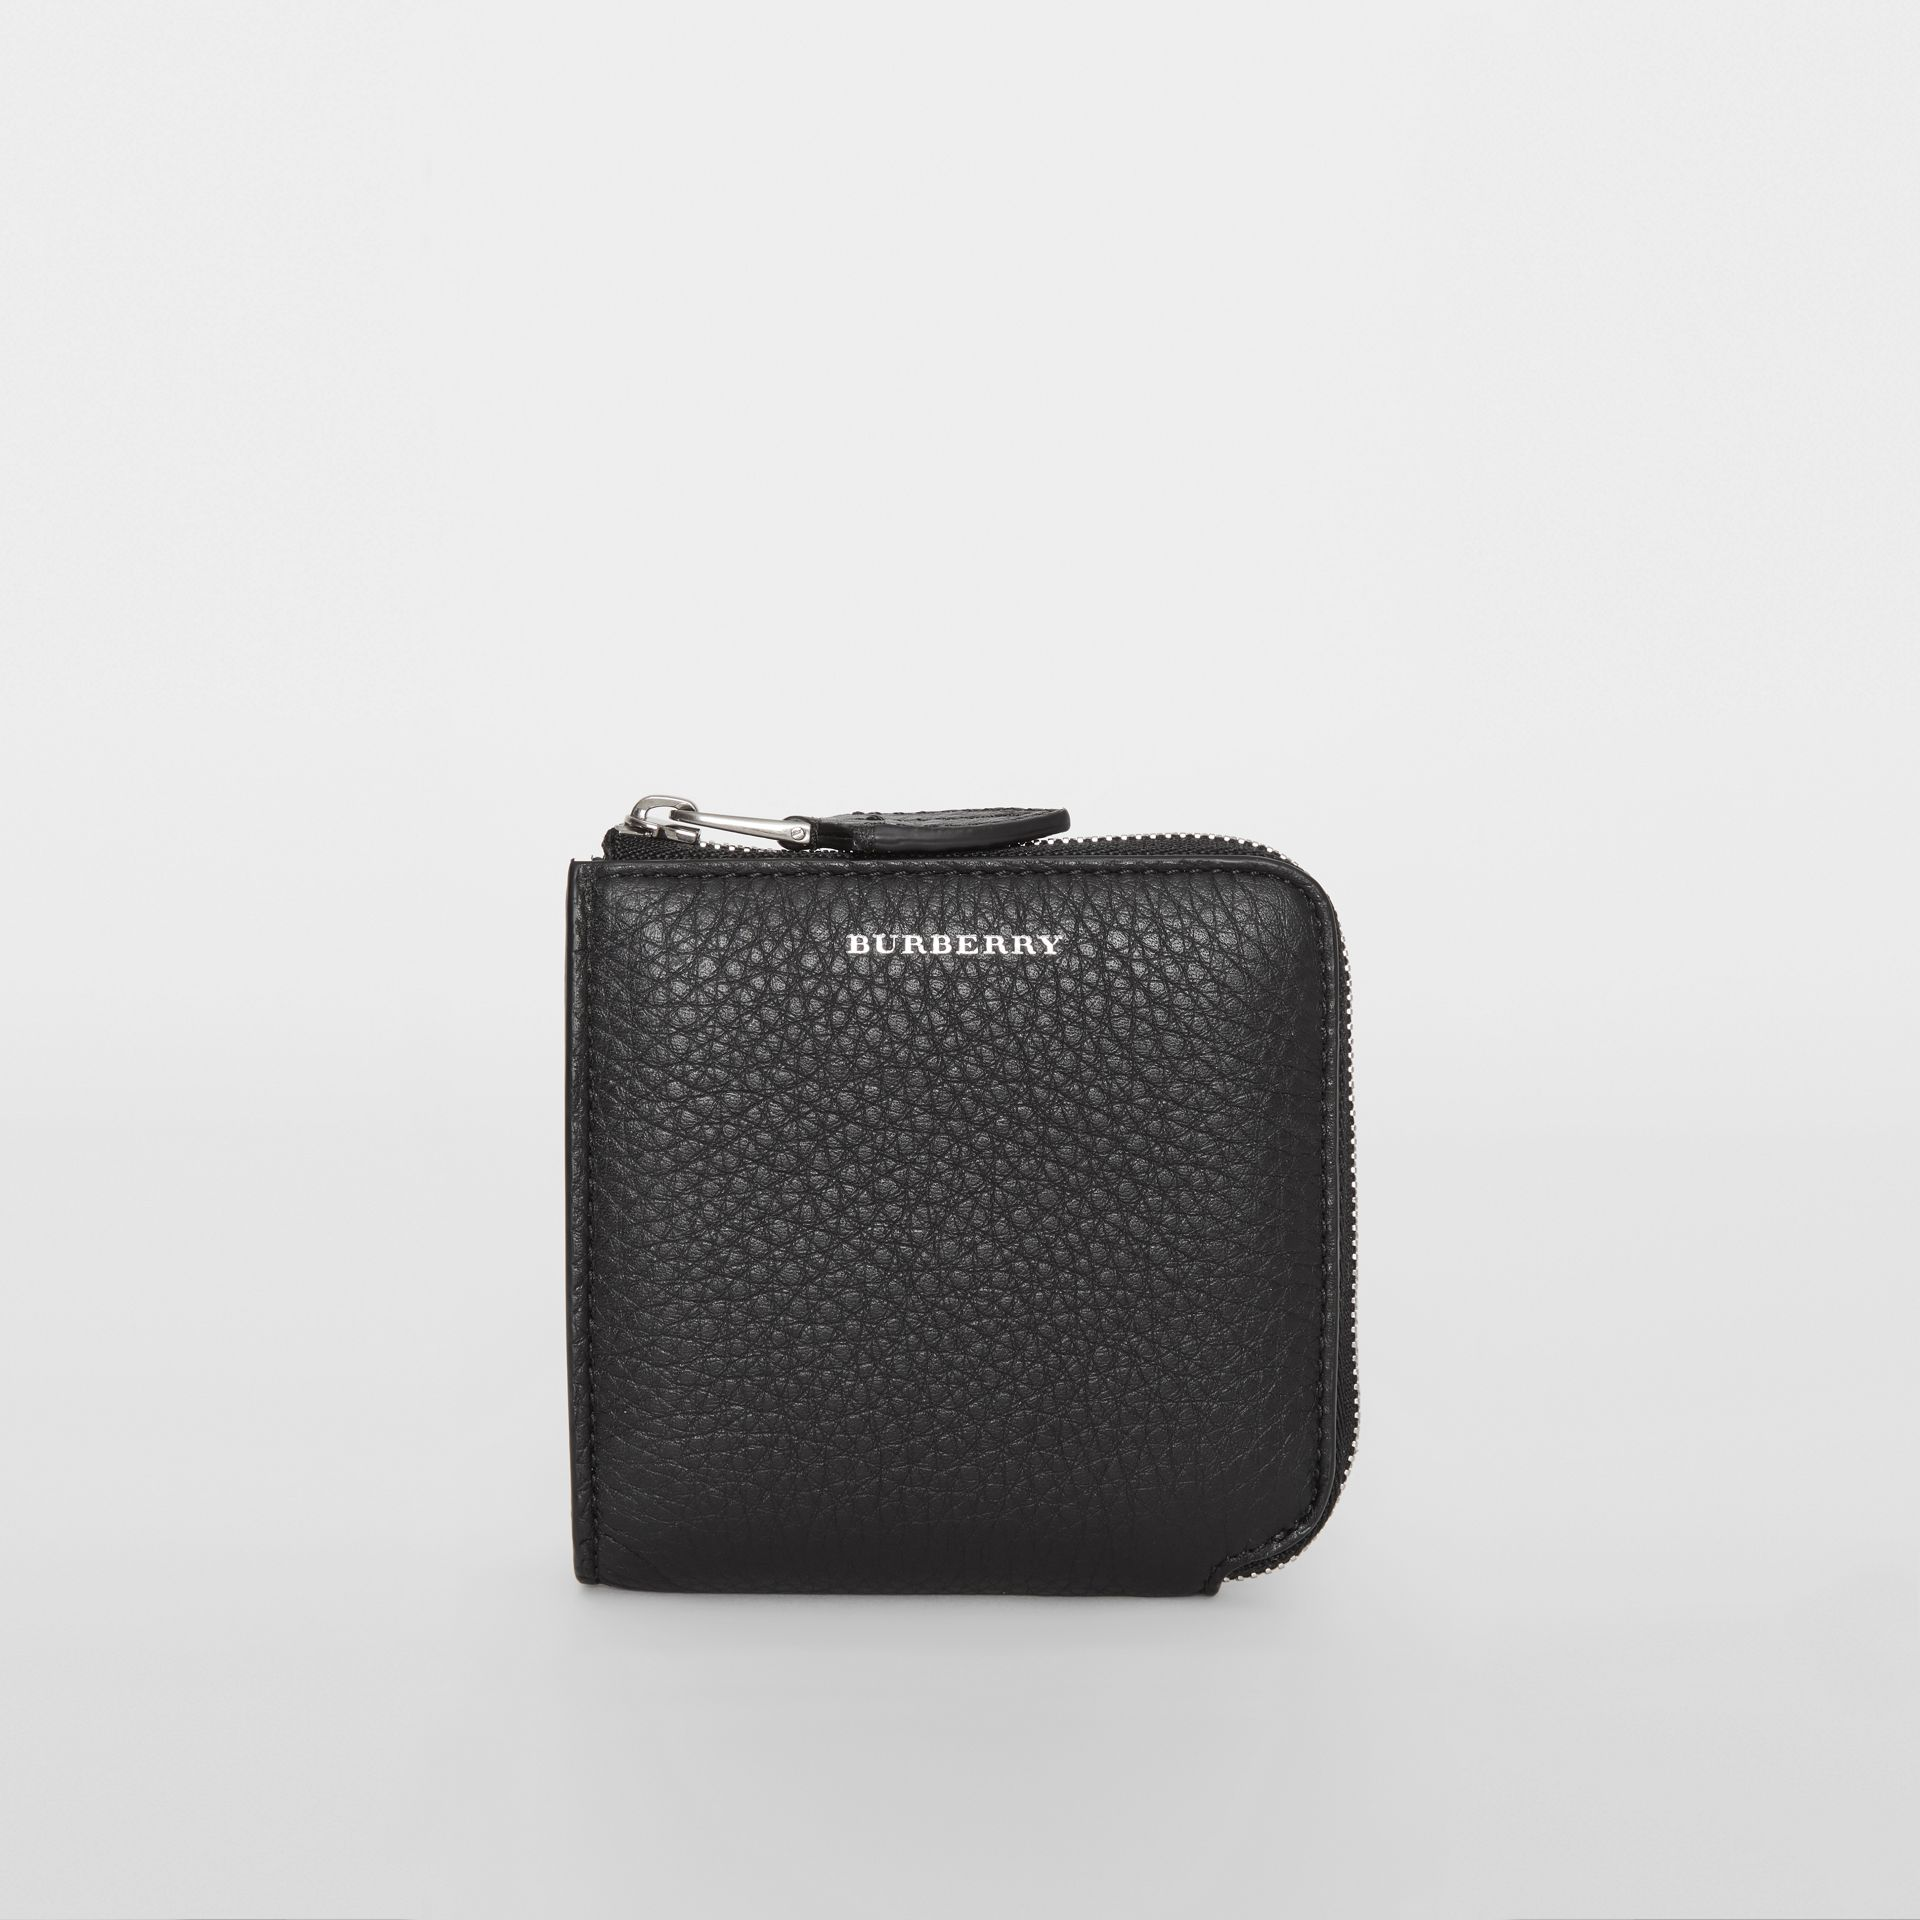 Grainy Leather Square Ziparound Wallet in Black - Women | Burberry United Kingdom - gallery image 4